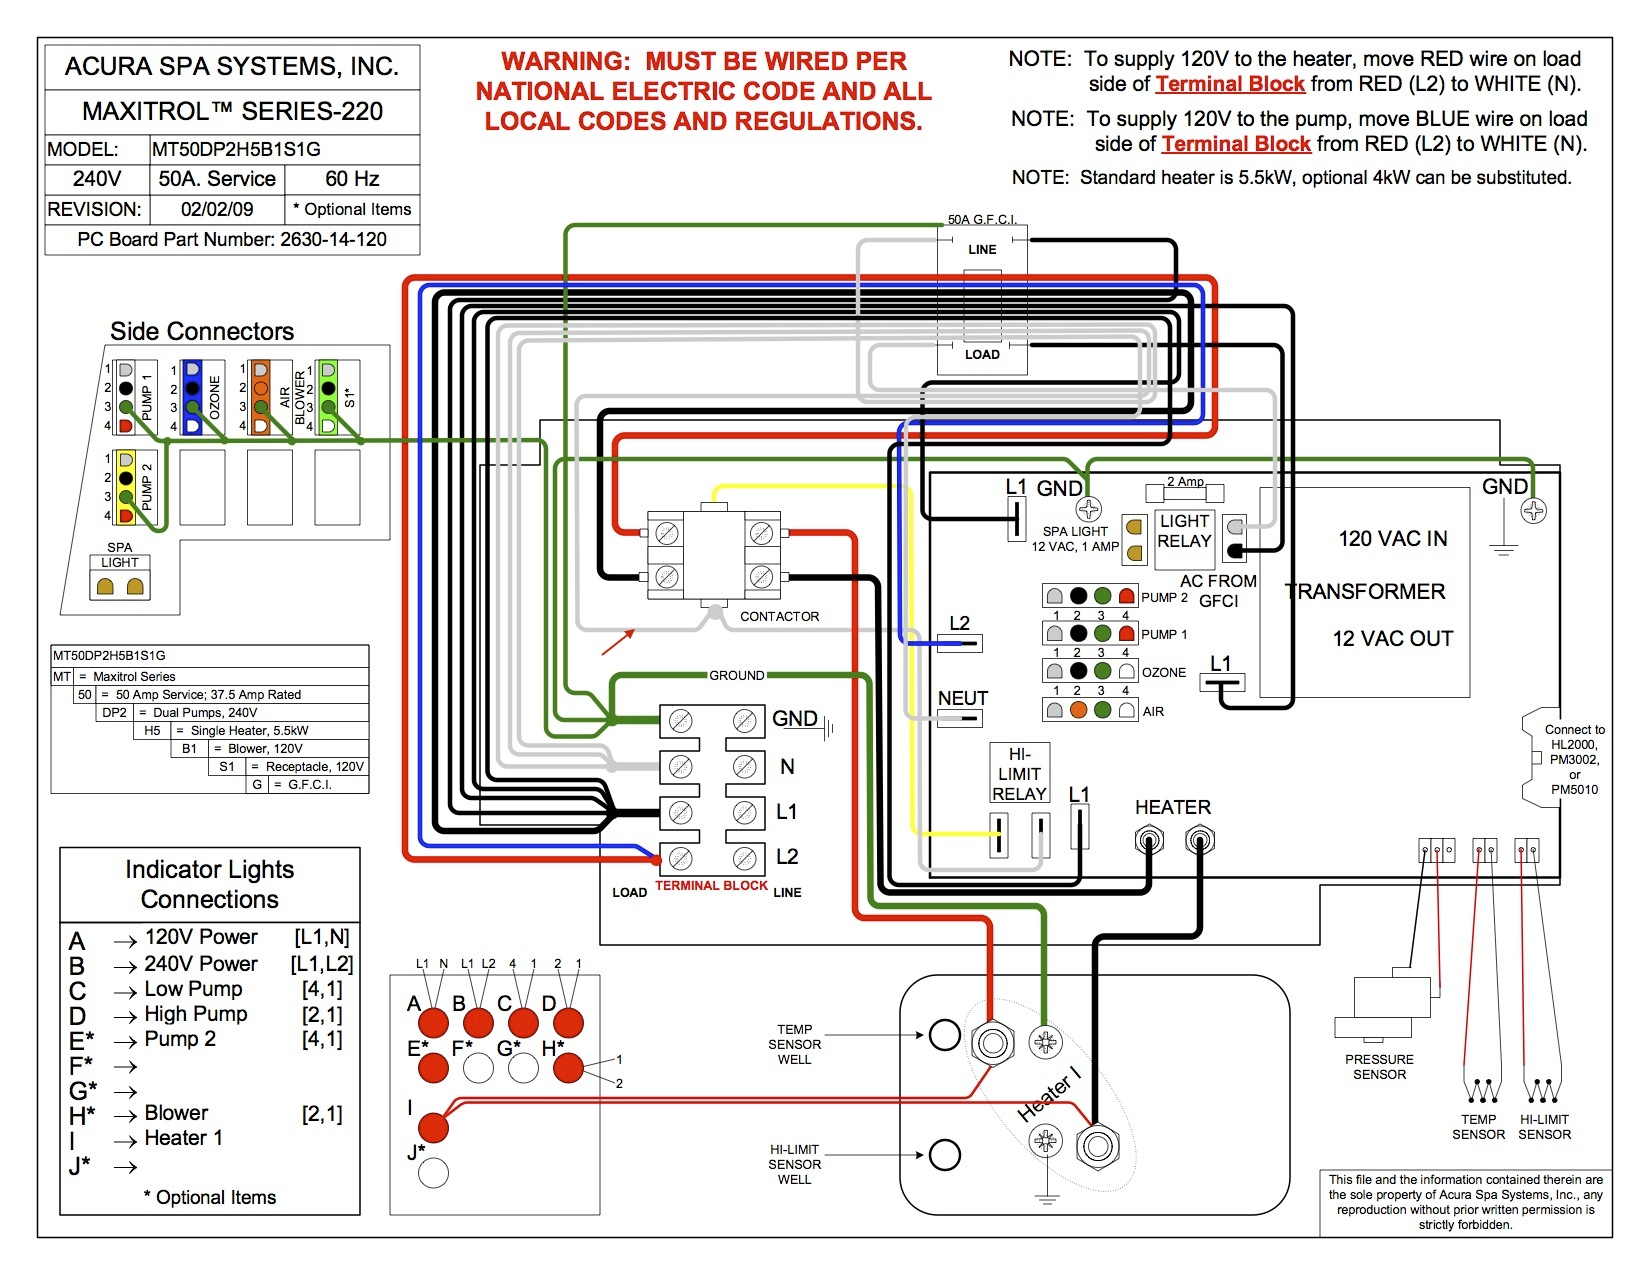 diagram] bullfrog spa wiring diagram full version hd quality wiring diagram  - eurodiagram.esserevolontario.it  diagram database